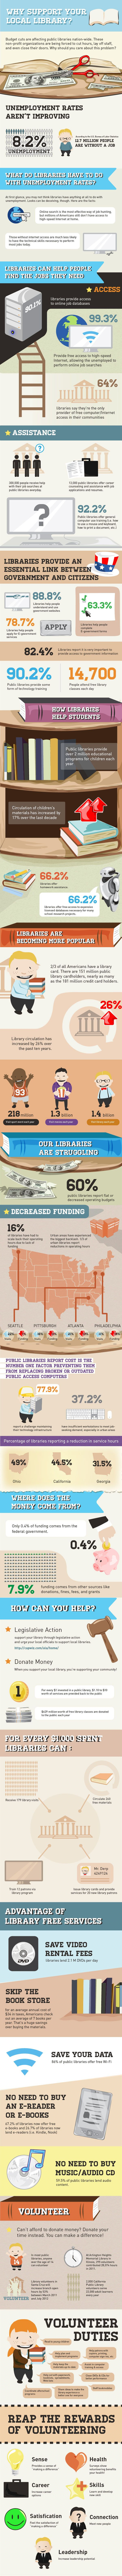 Why you should support your local library (infographic)  OLA KOWALCZYKPUBLISHED ON FEB 3, 2014